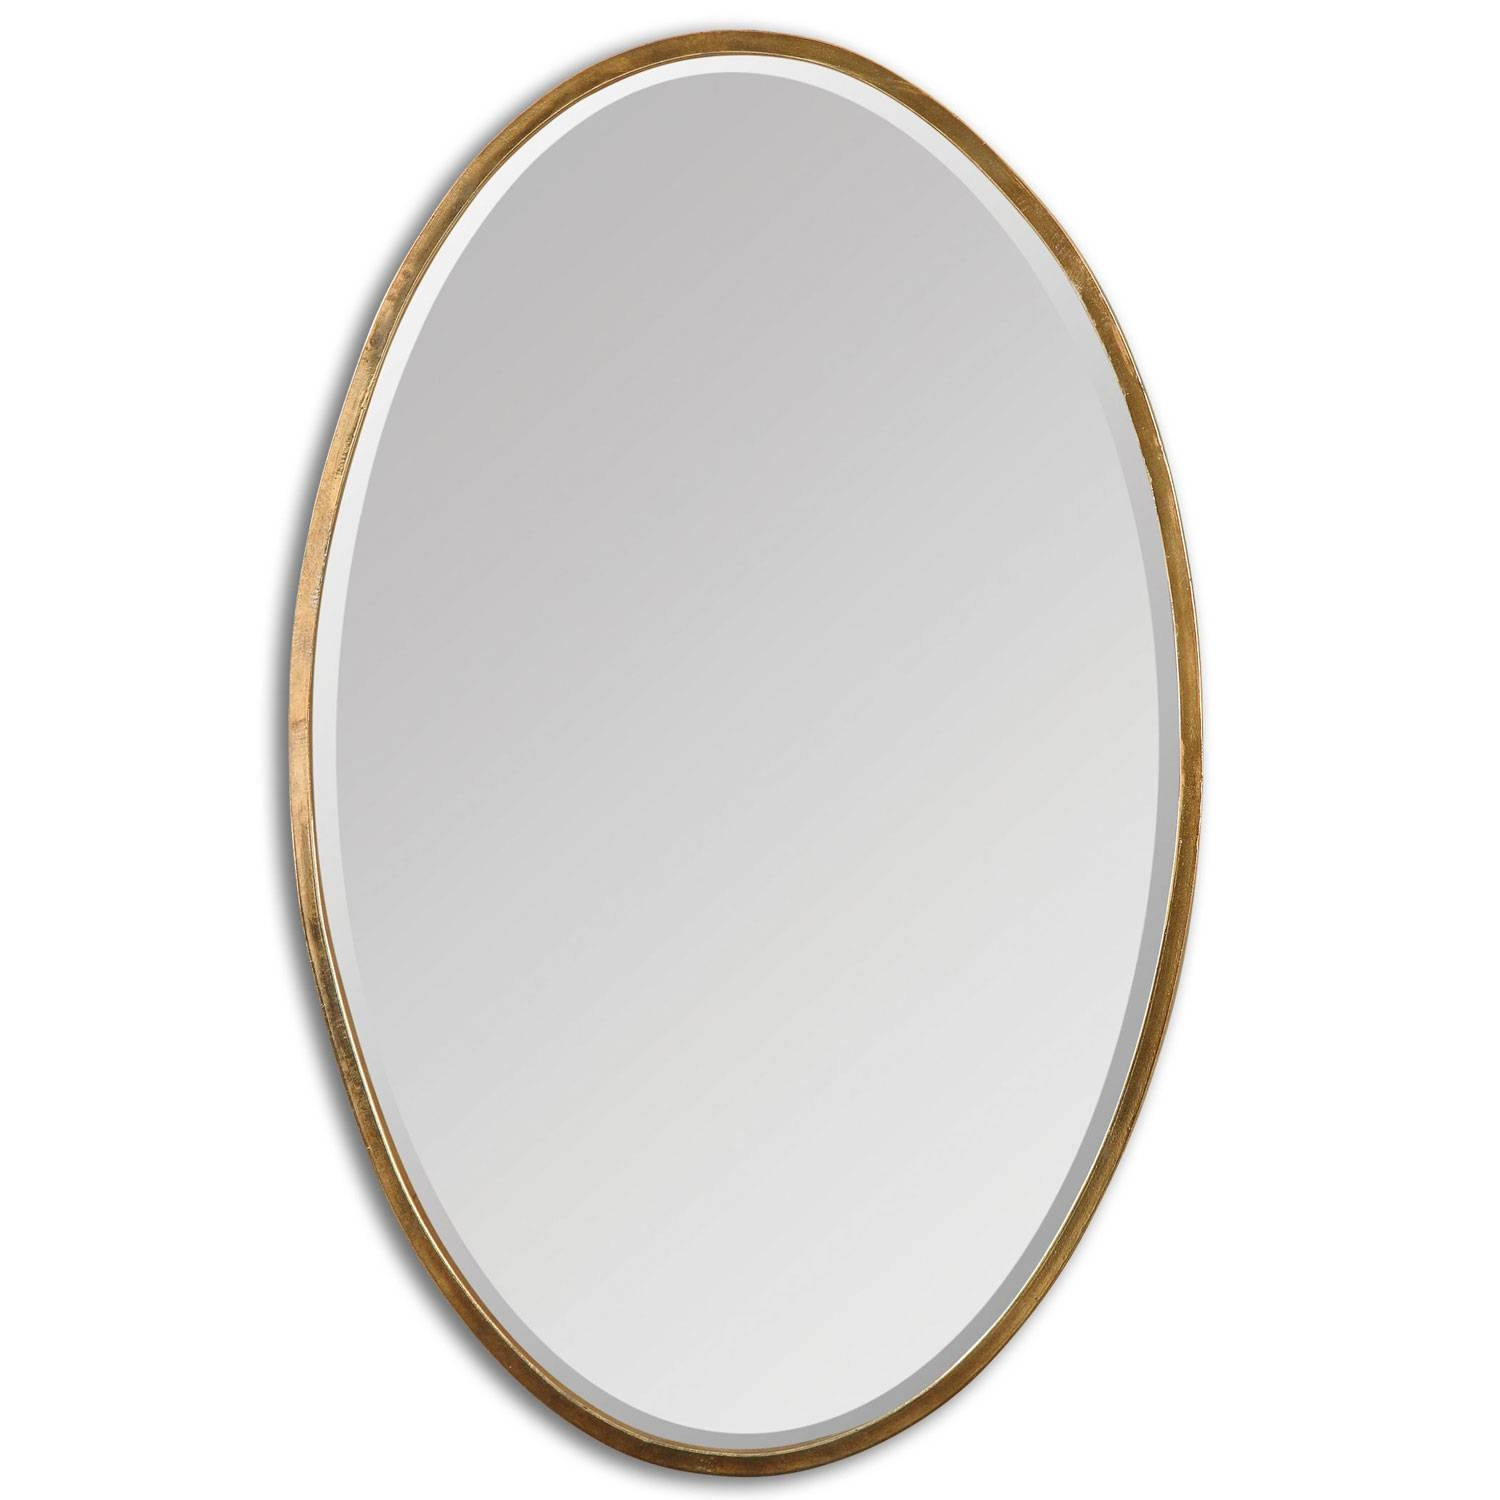 Herleva Oval Antique Gold Oval Mirror Uttermost Wall Mirror for Oval Mirrors For Walls (Image 8 of 25)